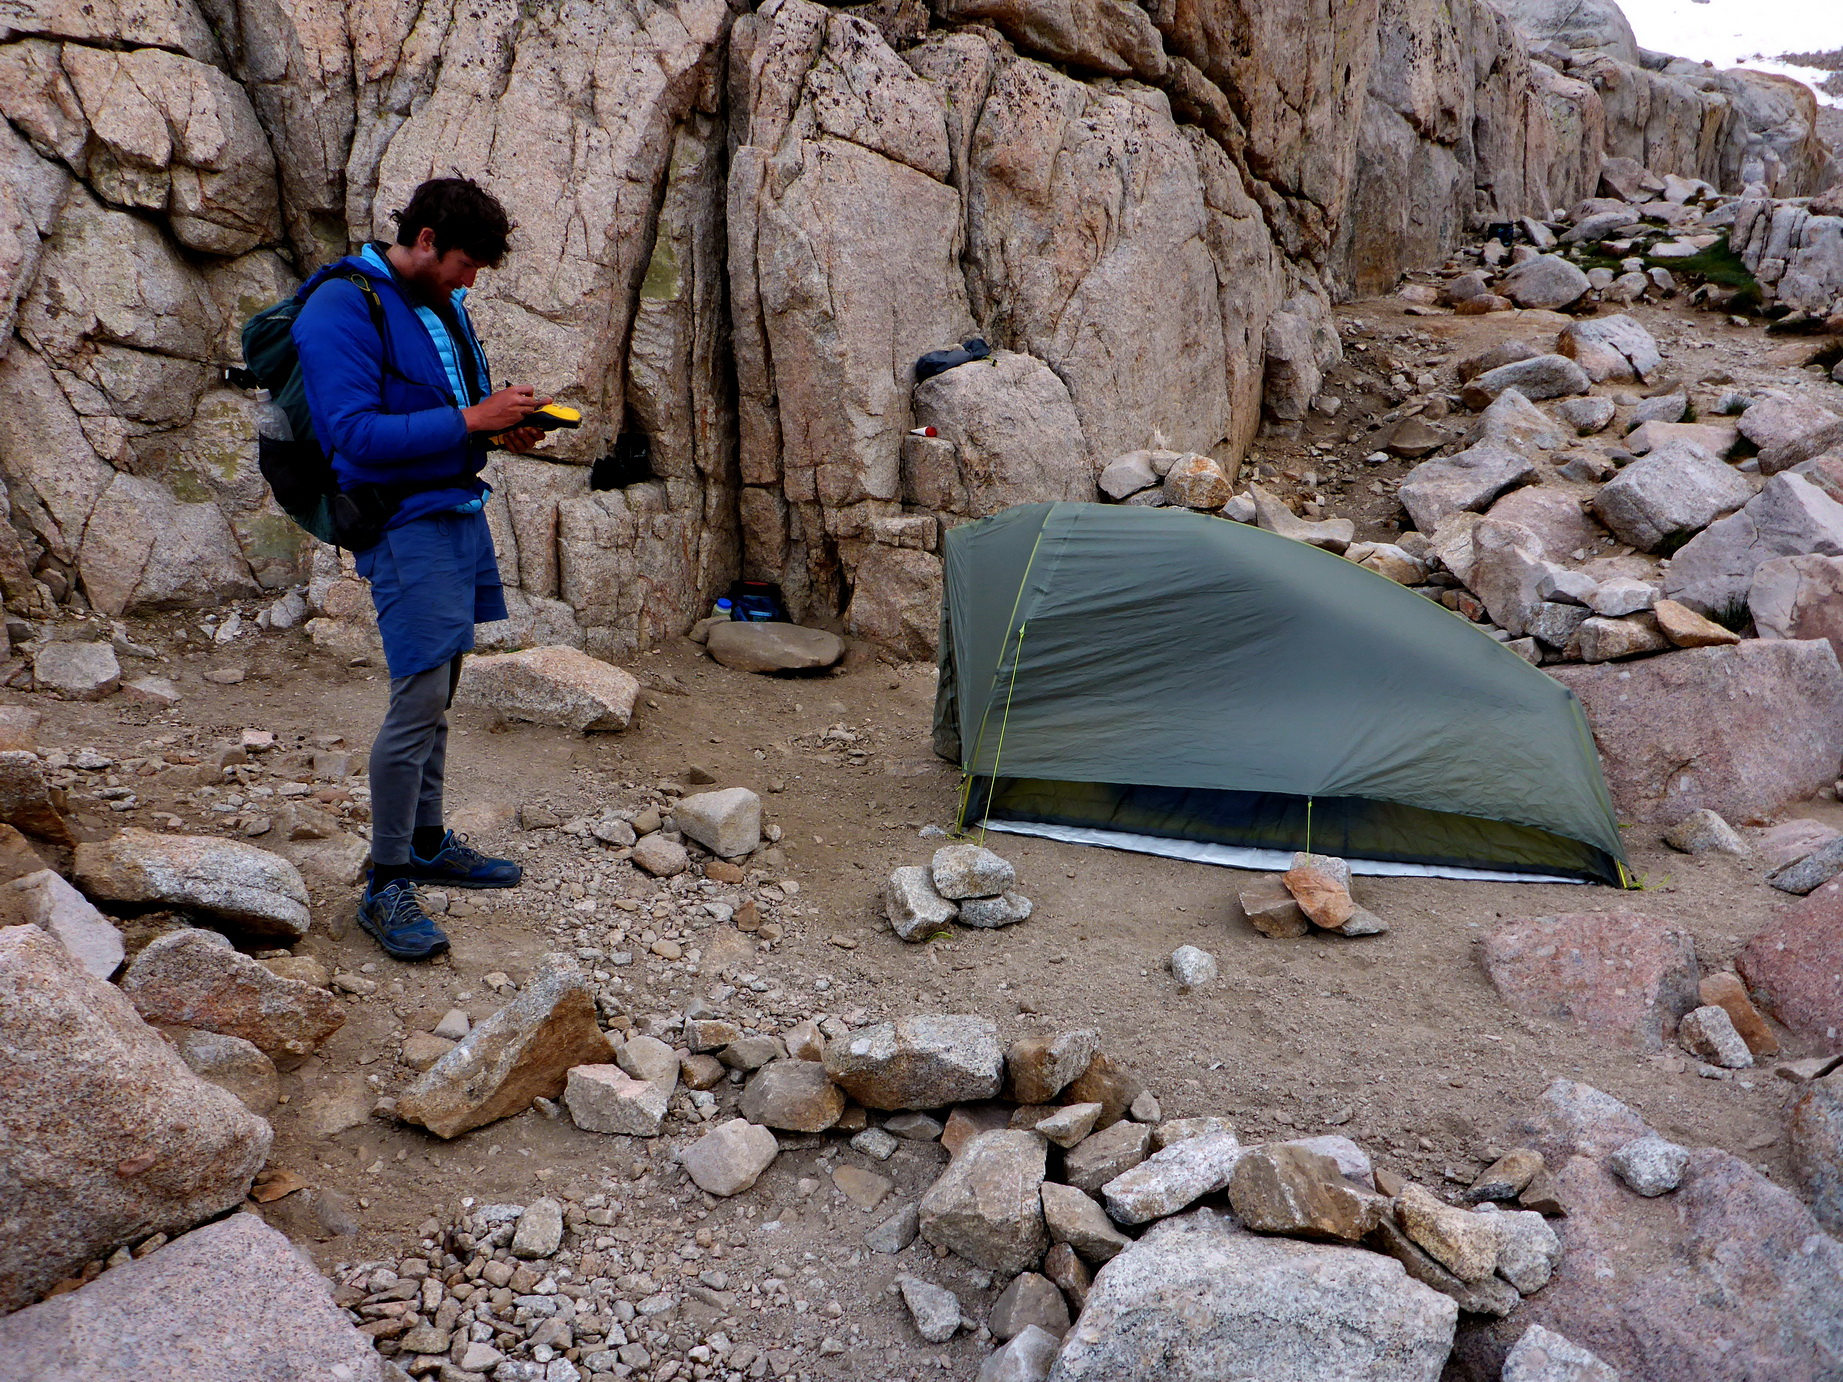 Camping Near Waterbodies in Wilderness - Sustainable Management Strategies